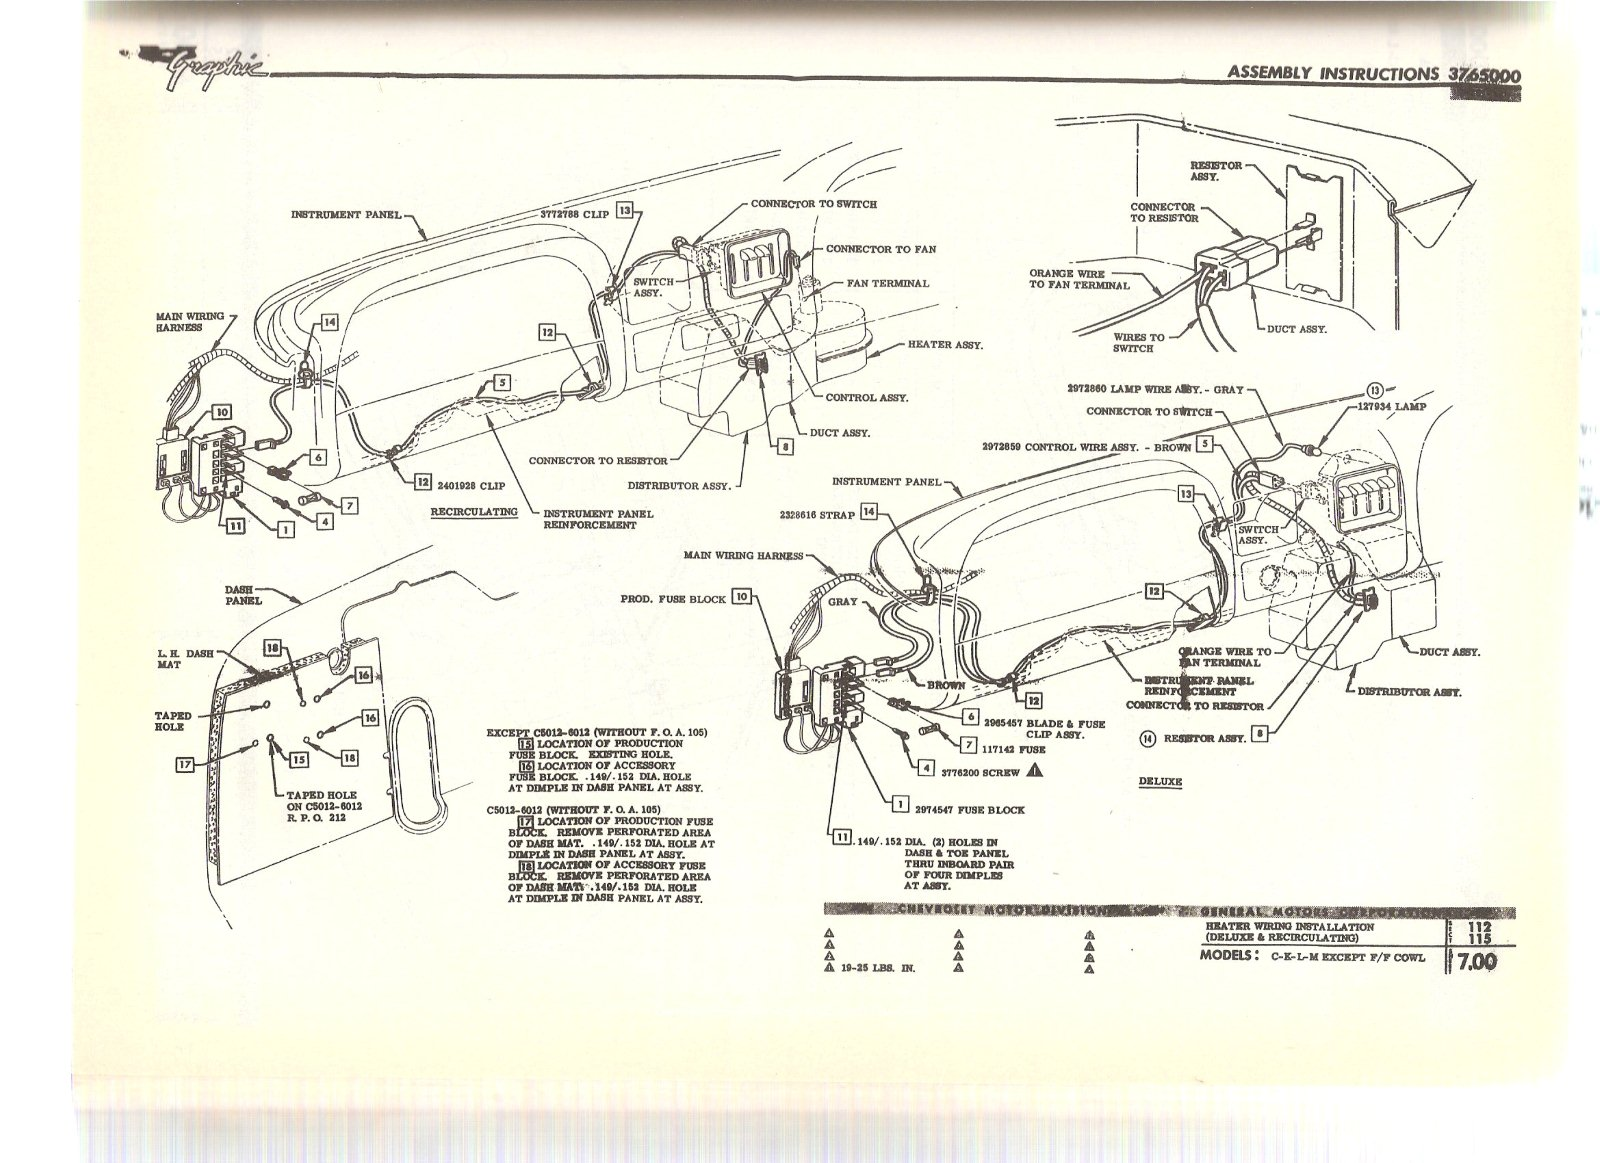 67 Gto Wiring Diagram Download Schematics Diagrams 1964 Pontiac 59 Chevy Wiper Switch 77 Corvette 1966 1970